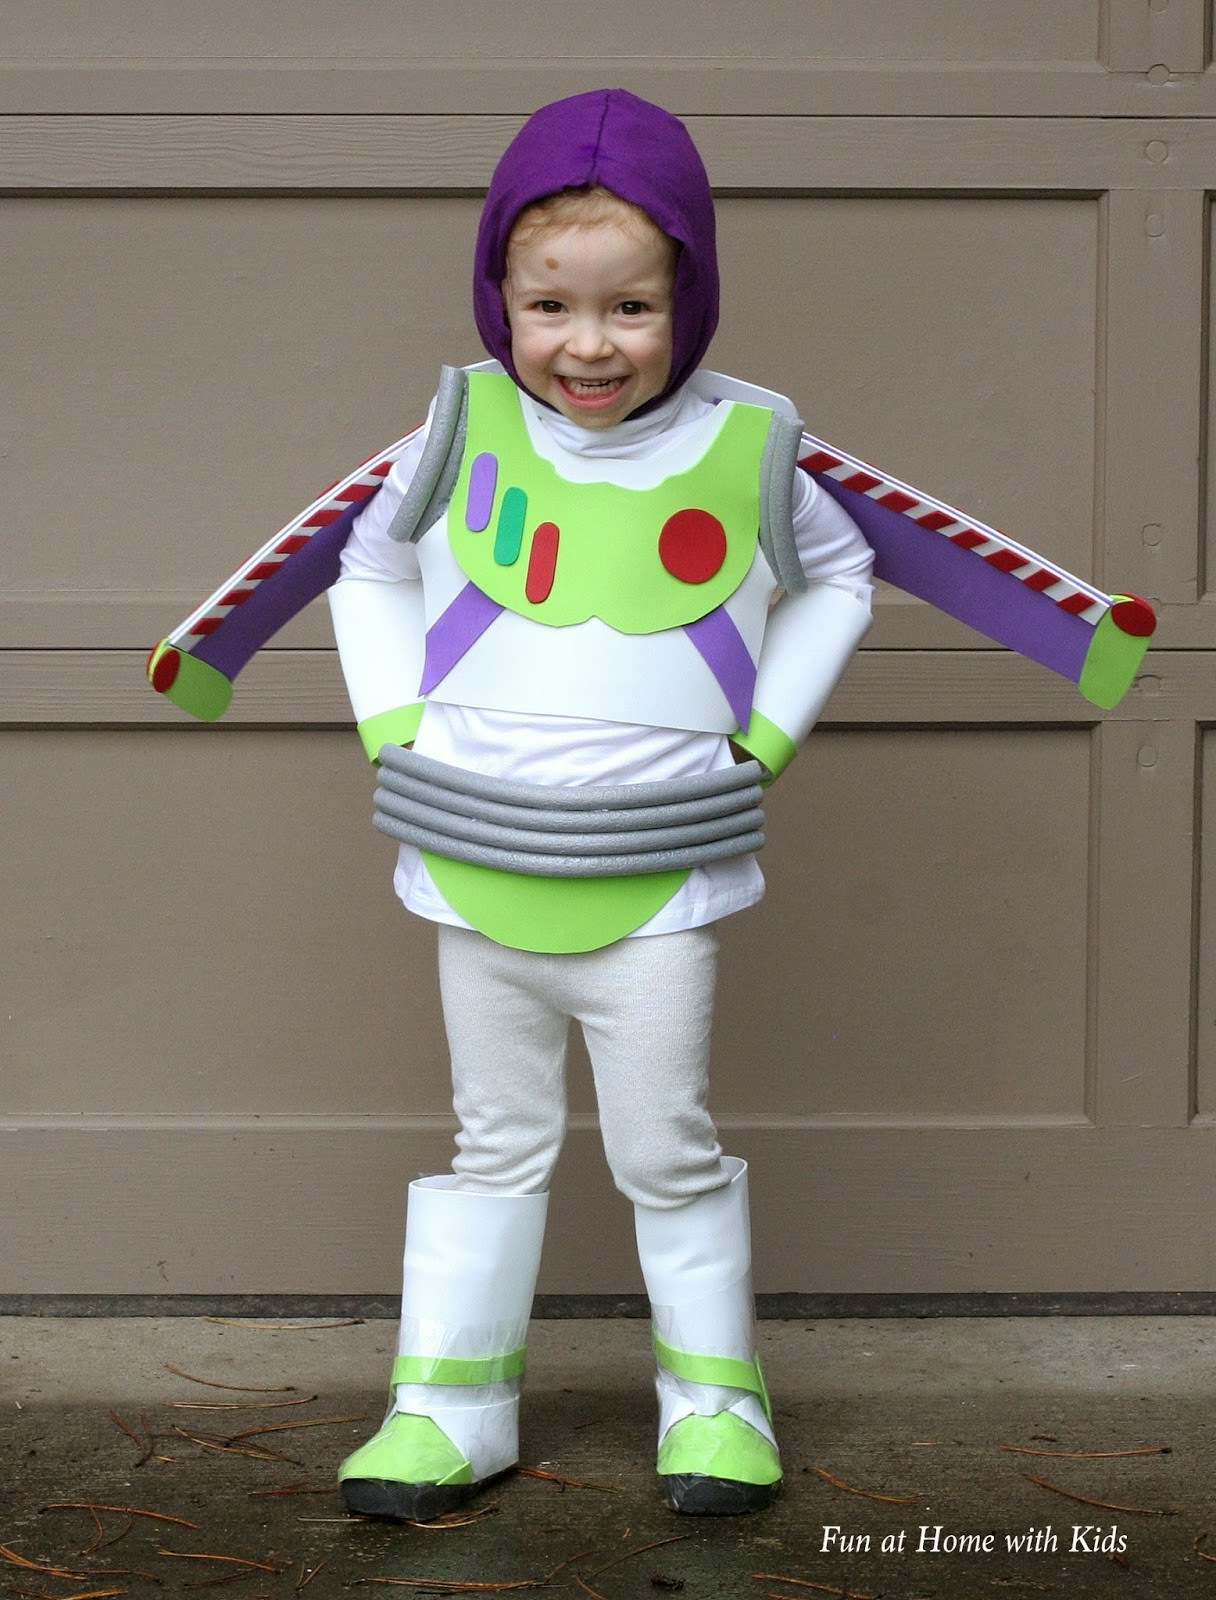 Best ideas about DIY Kids Costume . Save or Pin DIY Kids Buzz Lightyear No Sew Halloween Costume Now.